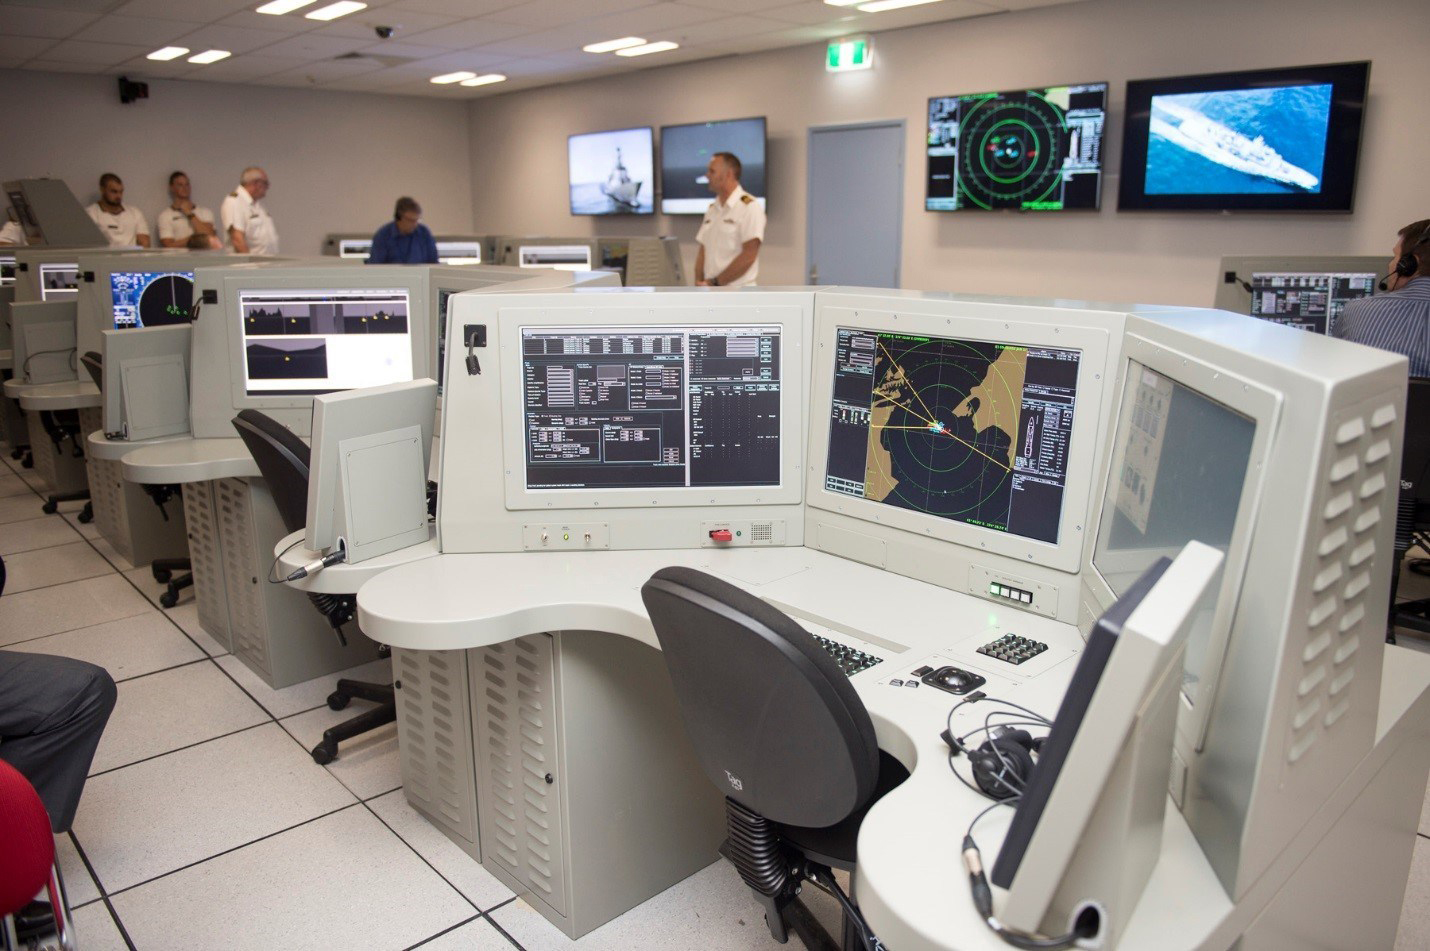 Lockheed Martin Canada's Combat System Trainer was delivered to the Maritime Warfare Training Centre at the Royal New Zealand Navy base in Devonport, New Zealand. The simulator is part of the RNZN's Frigate System Upgrade Project. (lockheed martin canada)